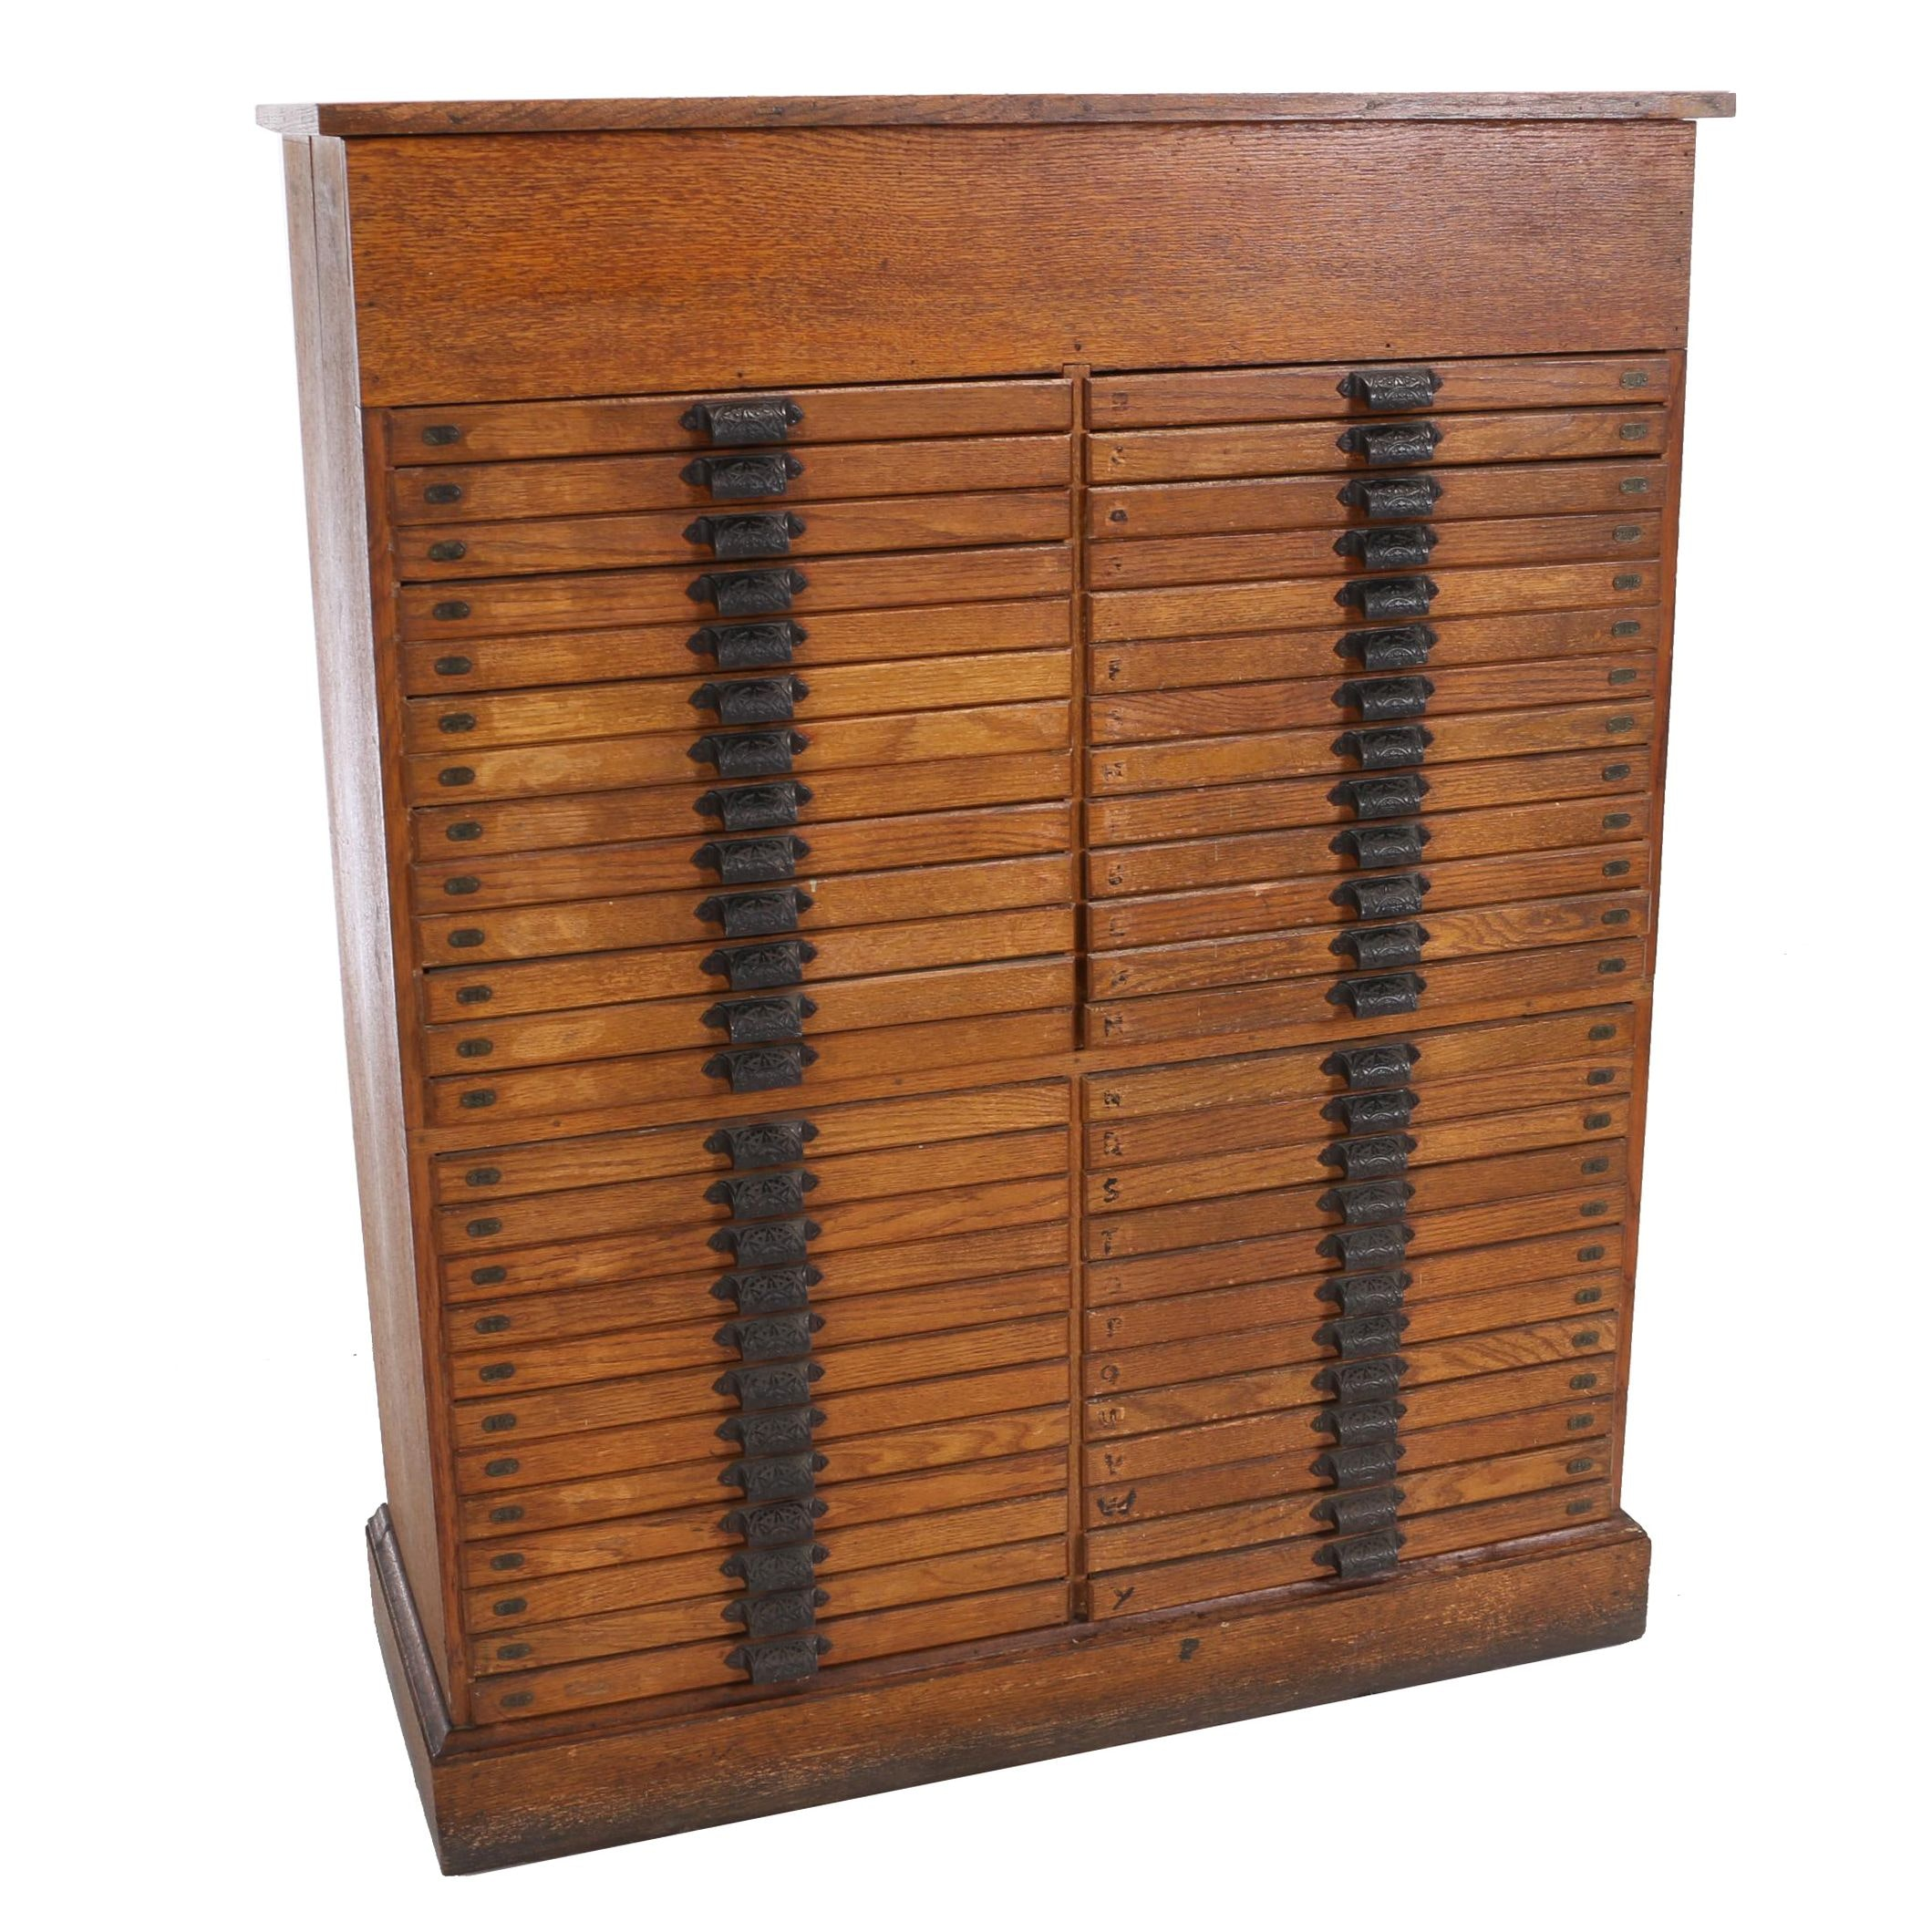 Oak Fifty-Drawer Printer's Cabinet with Hinged Lid, Circa 1900